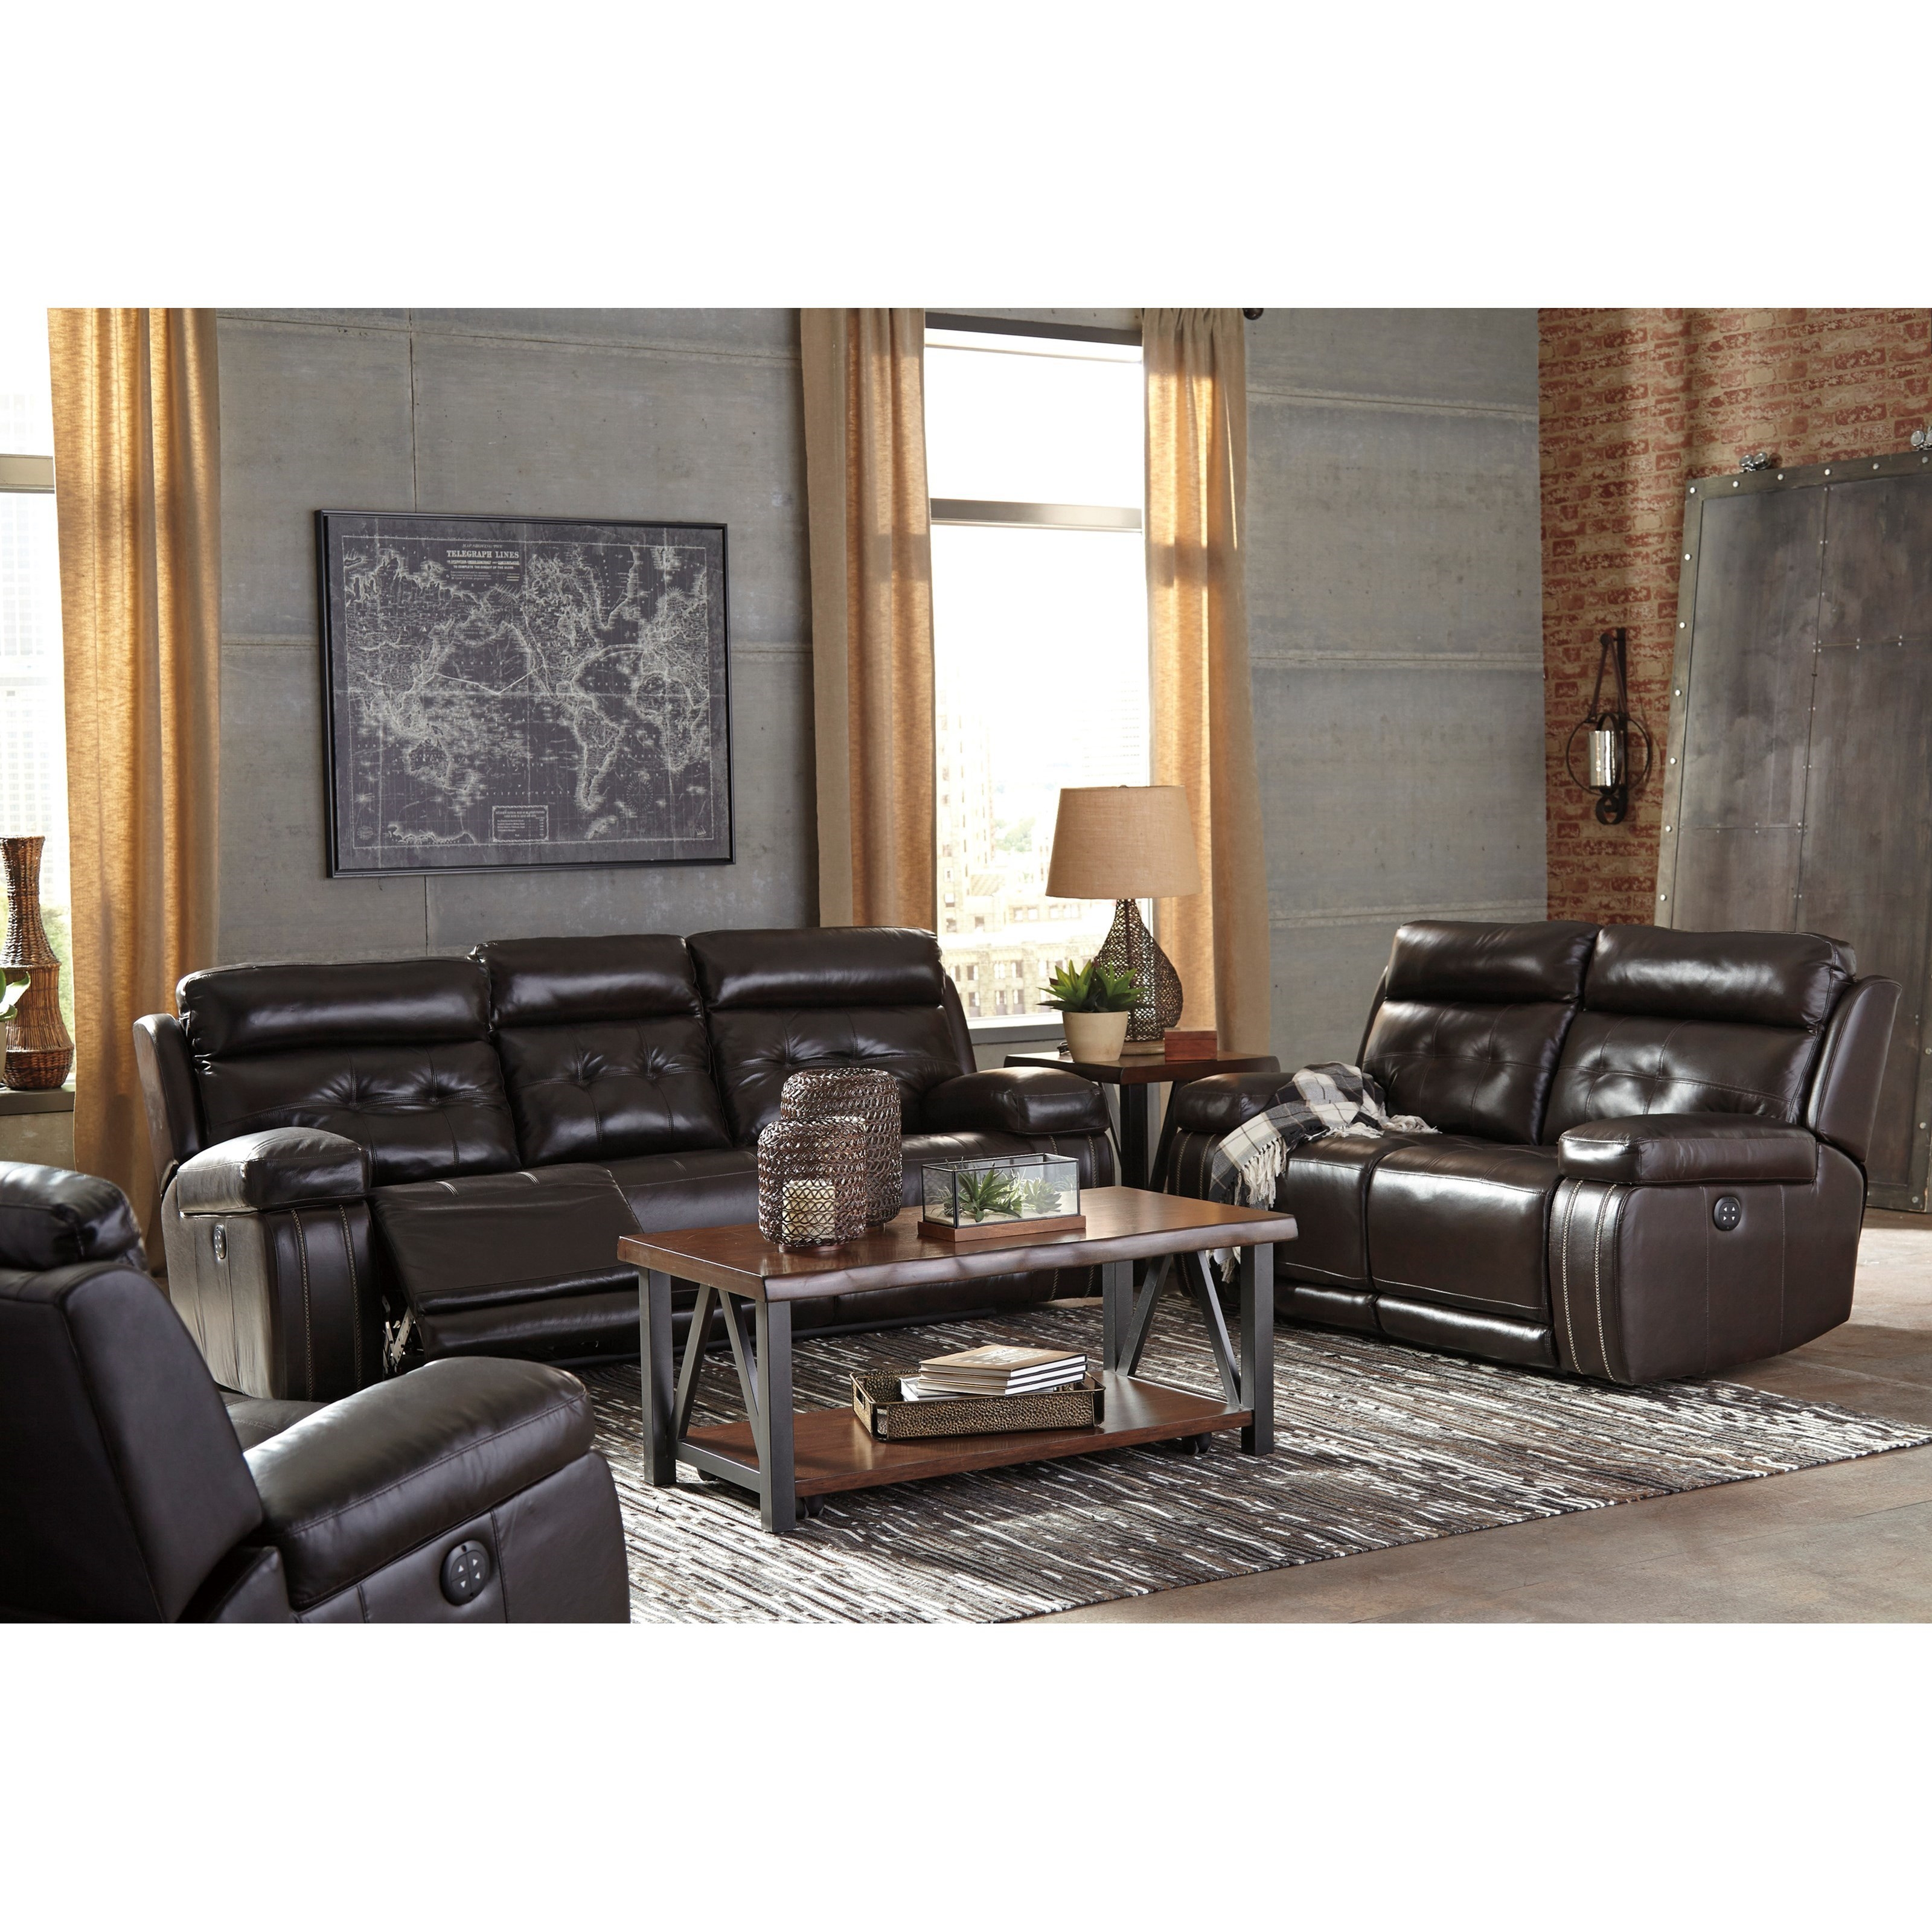 Signature Design by Ashley Graford Reclining Living Room Group - Item Number: 64702 Living Room Group 2